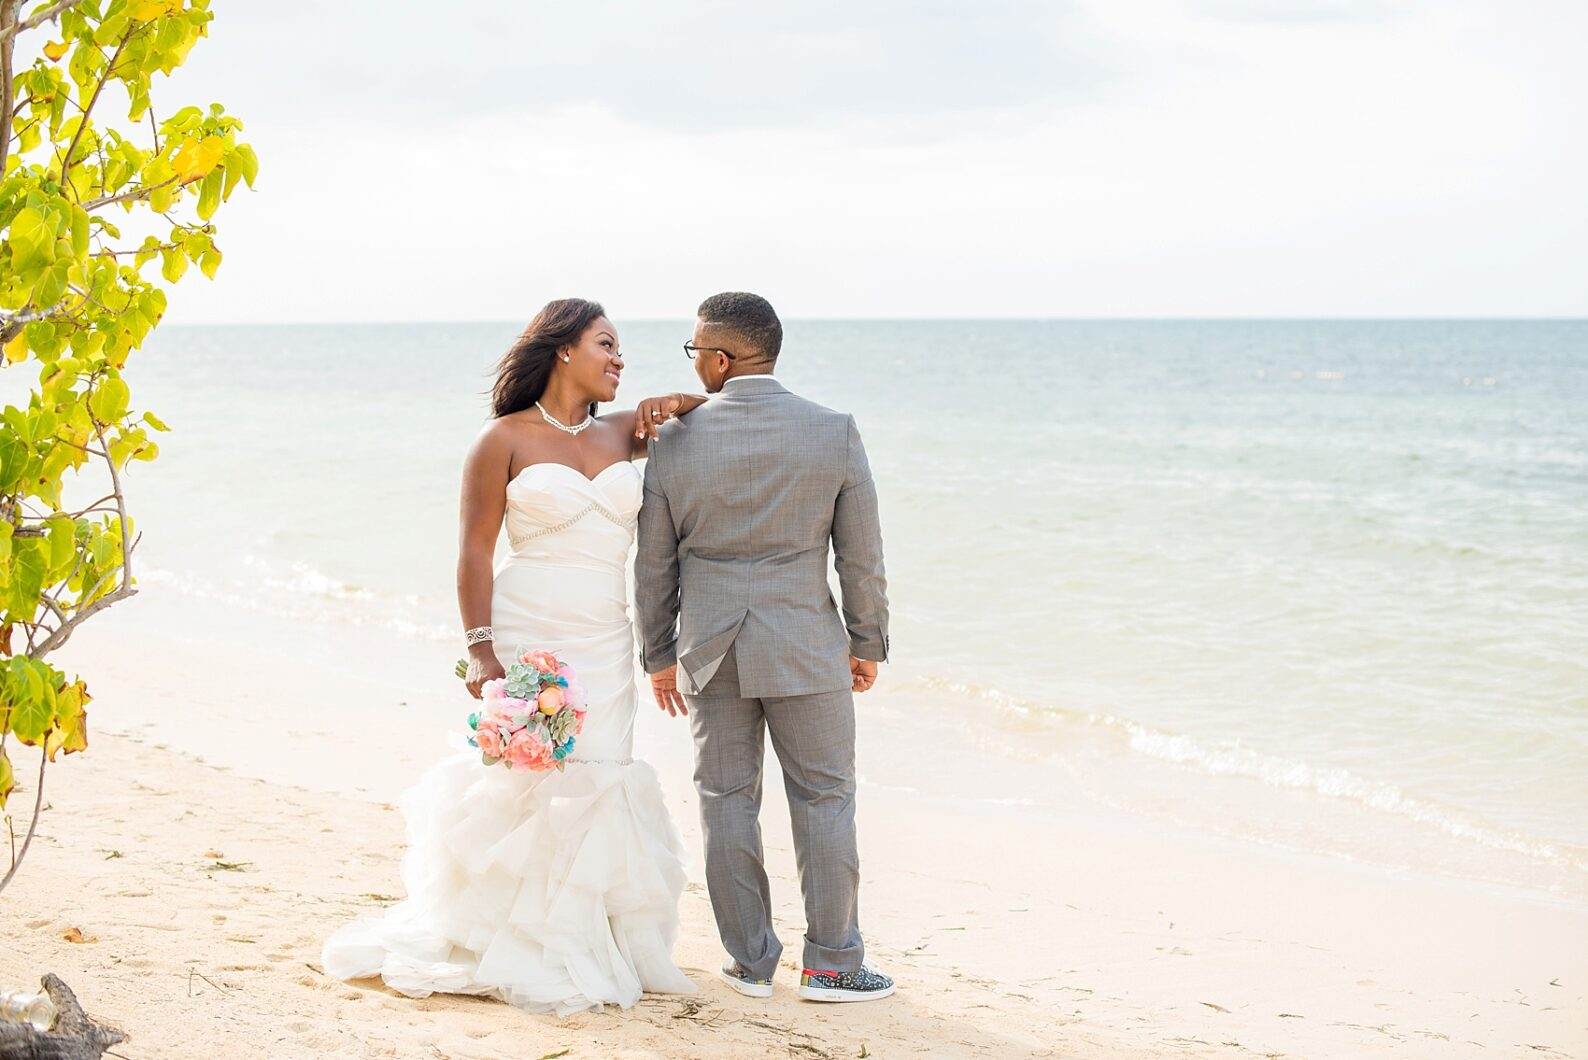 Iberostar Jamaica beach wedding photos, Montego Bay. Images by Mikkel Paige Photography.